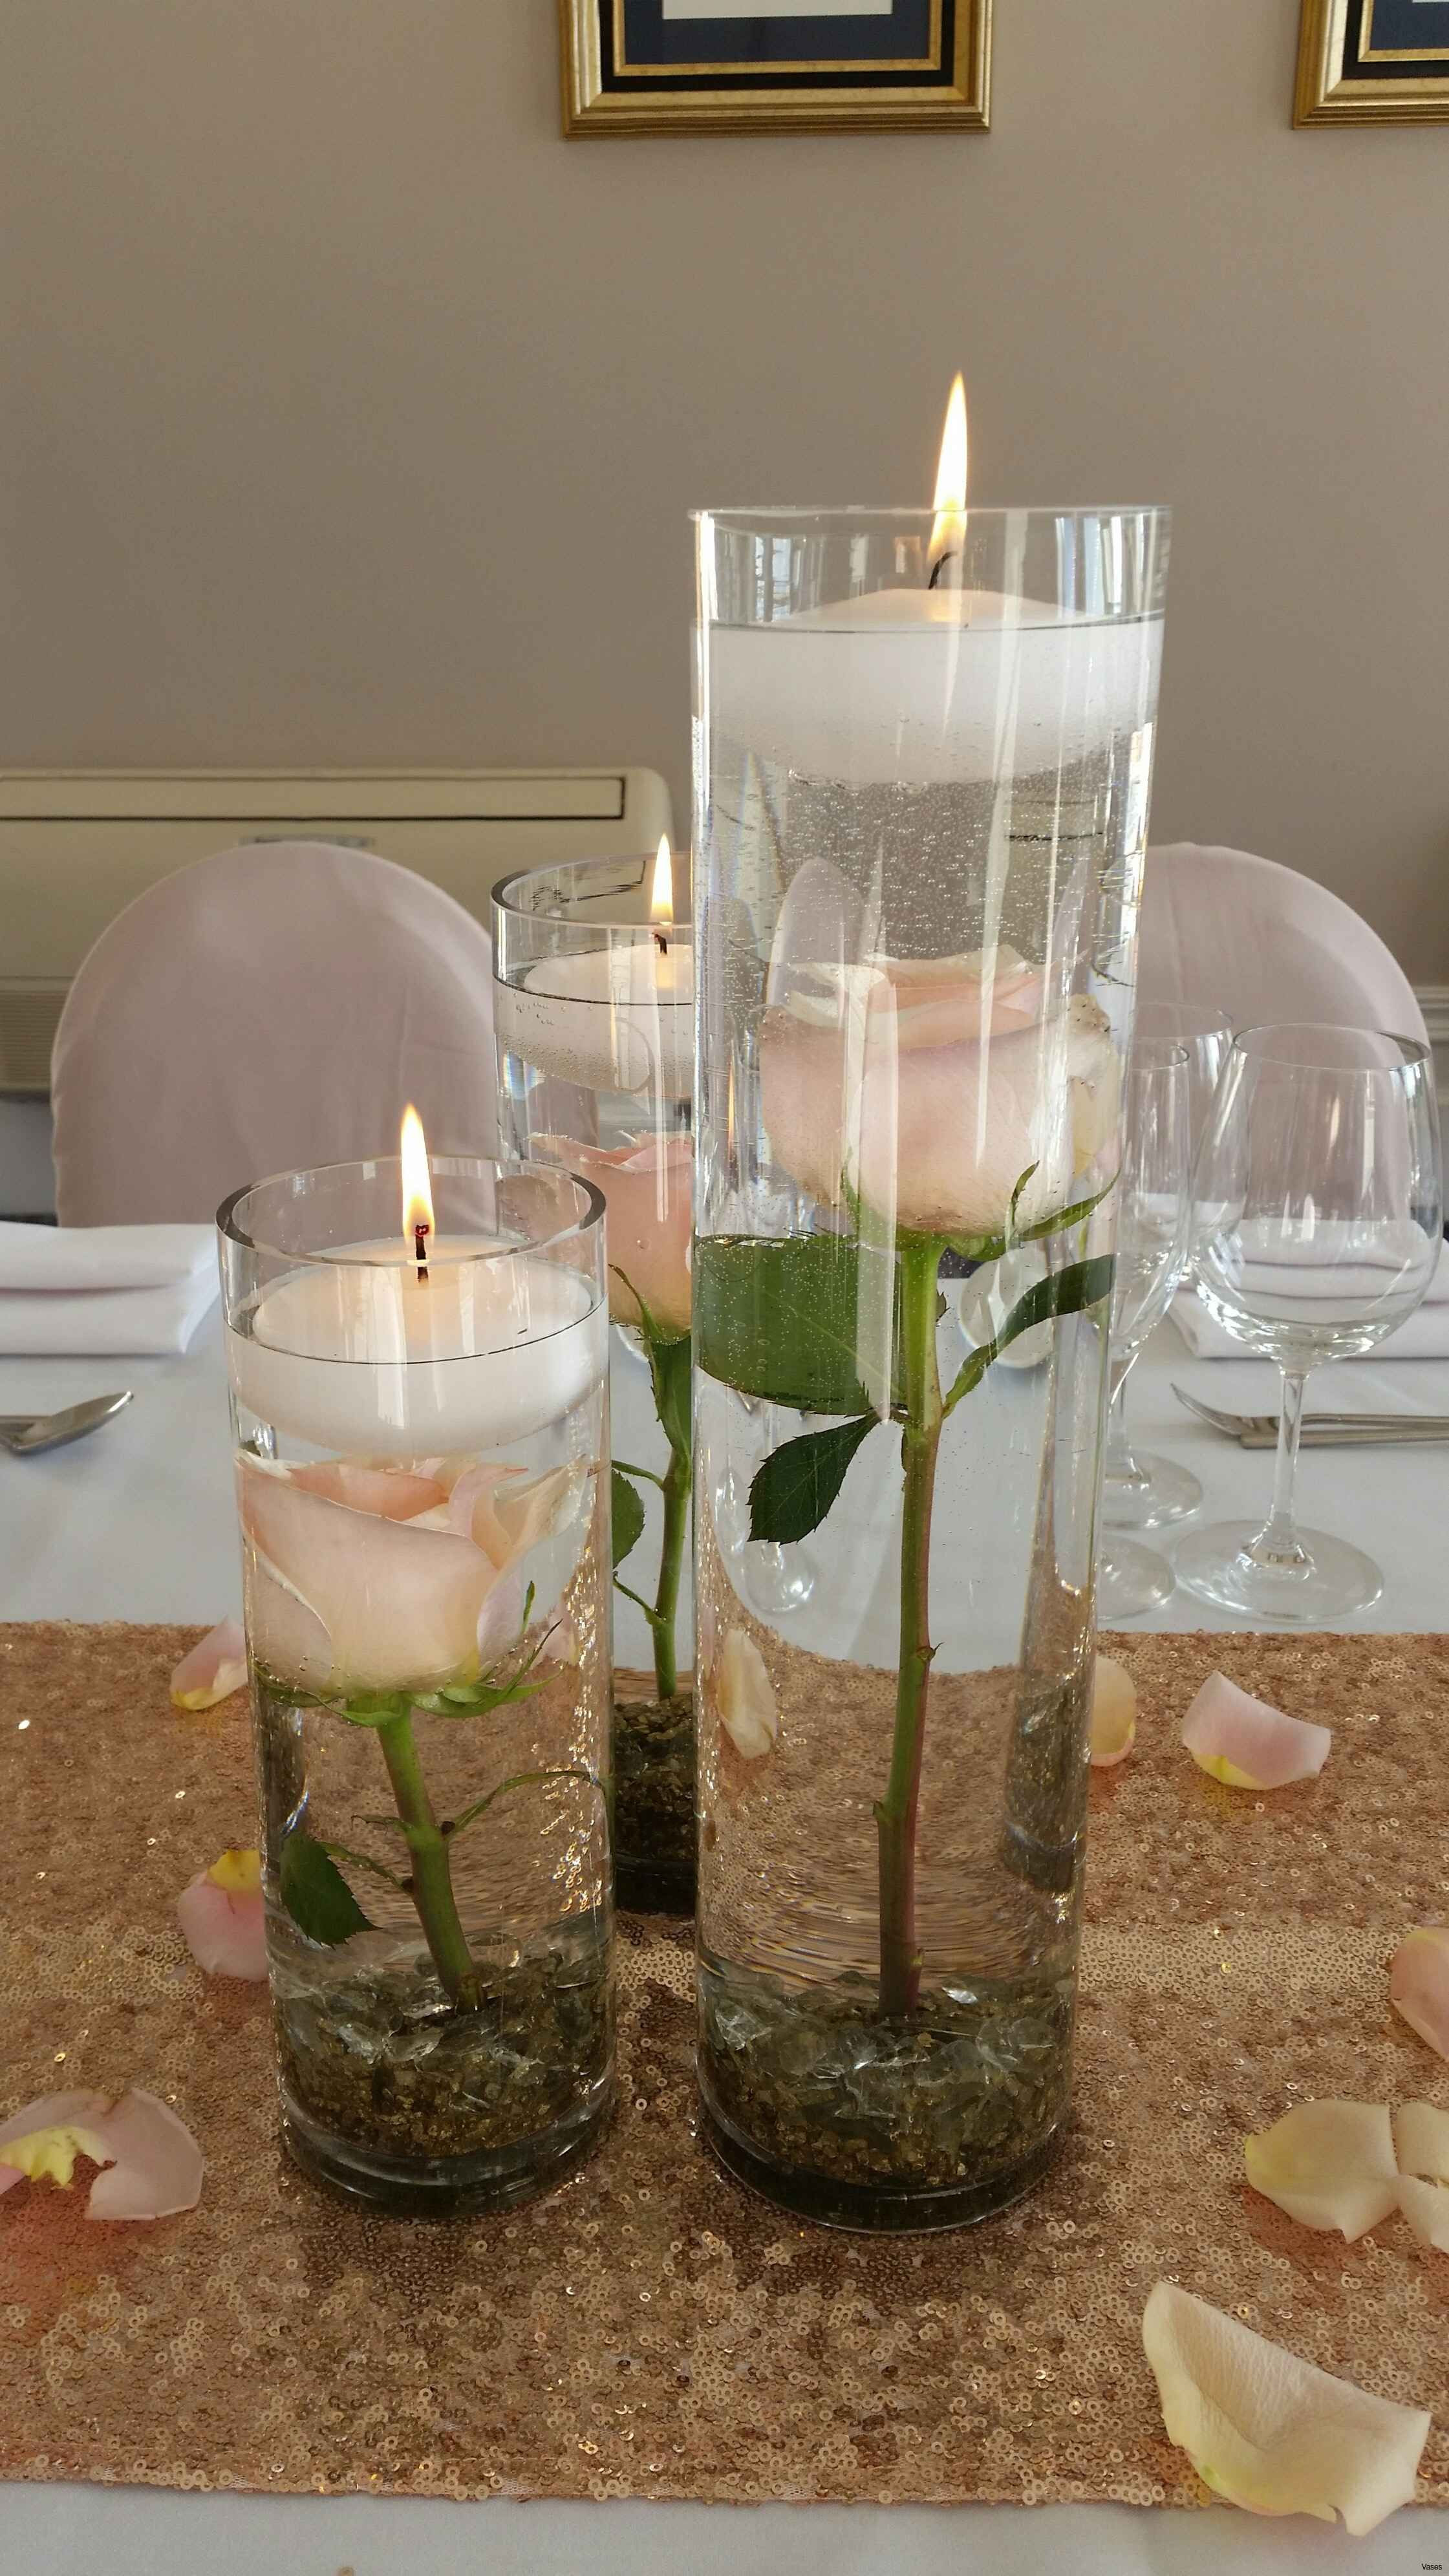 eastland glass cylinder vases set of 4 of 23 tall cylinder vases the weekly world throughout tall vase centerpiece ideas vases floating flowers in centerpieces